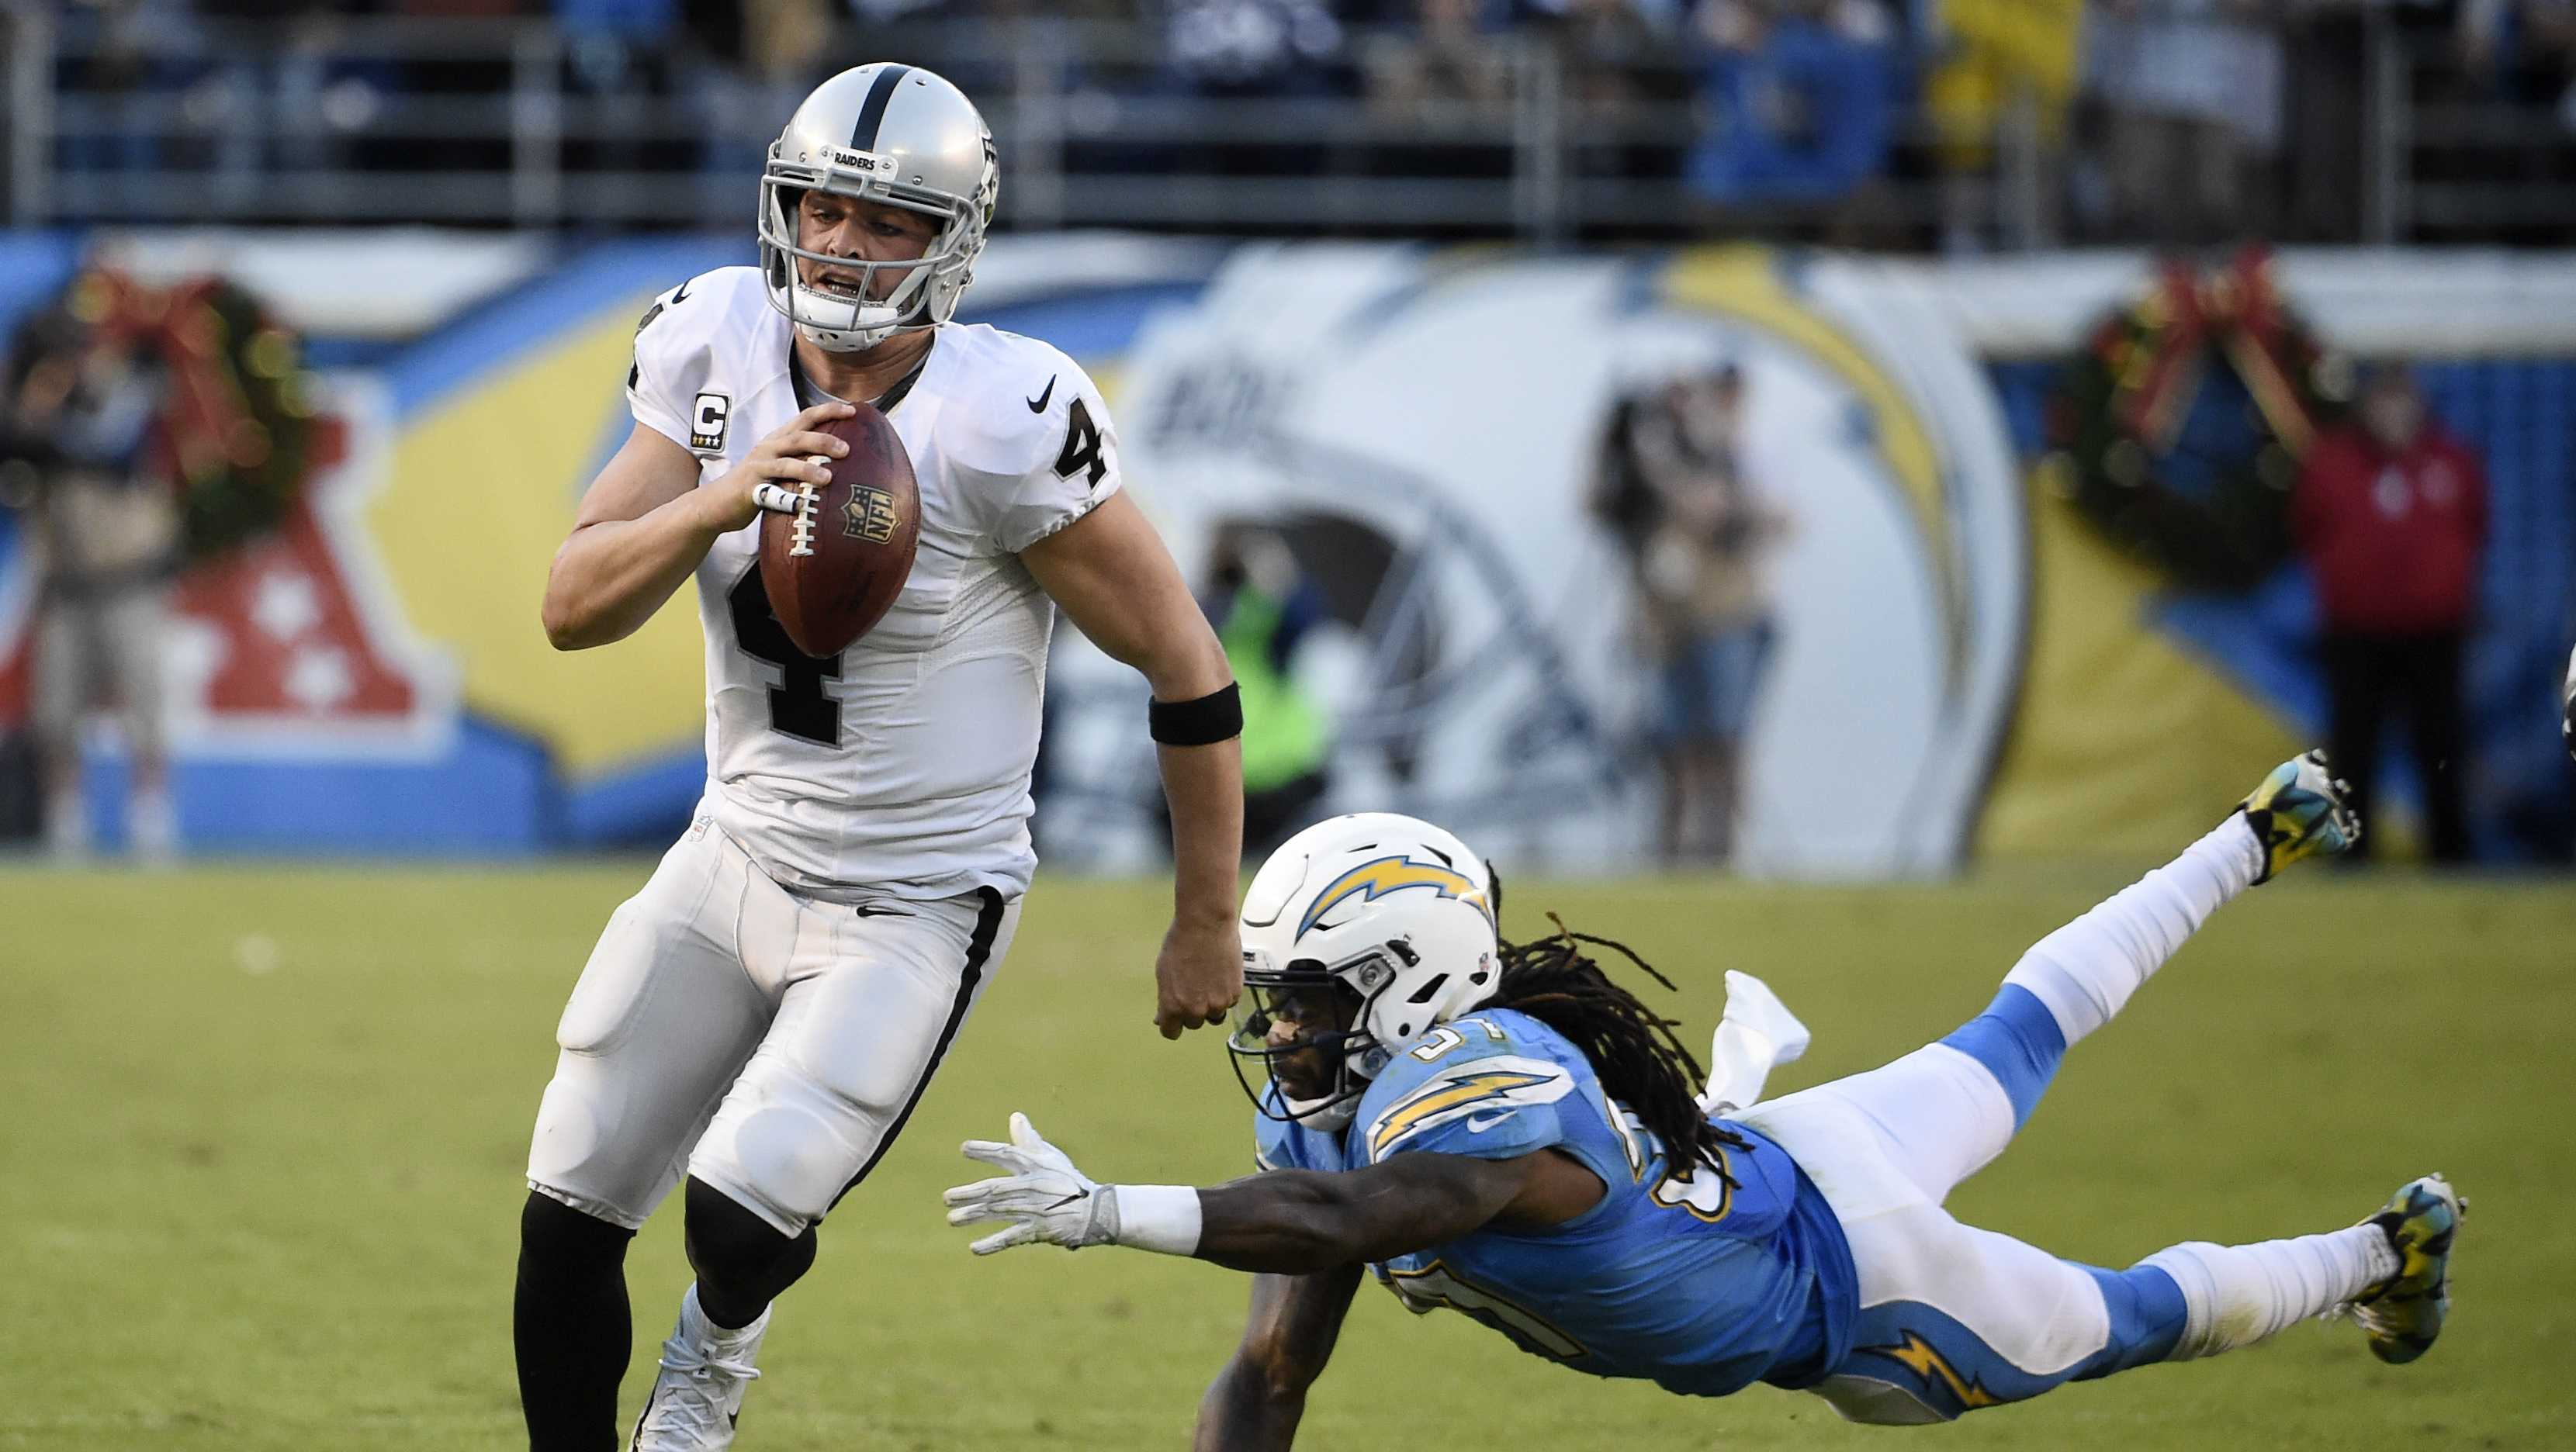 Oakland Raiders quarterback Derek Carr gets away from San Diego Chargers strong safety Jahleel Addae during the second half of an NFL football game Sunday, Dec. 18, 2016, in San Diego.